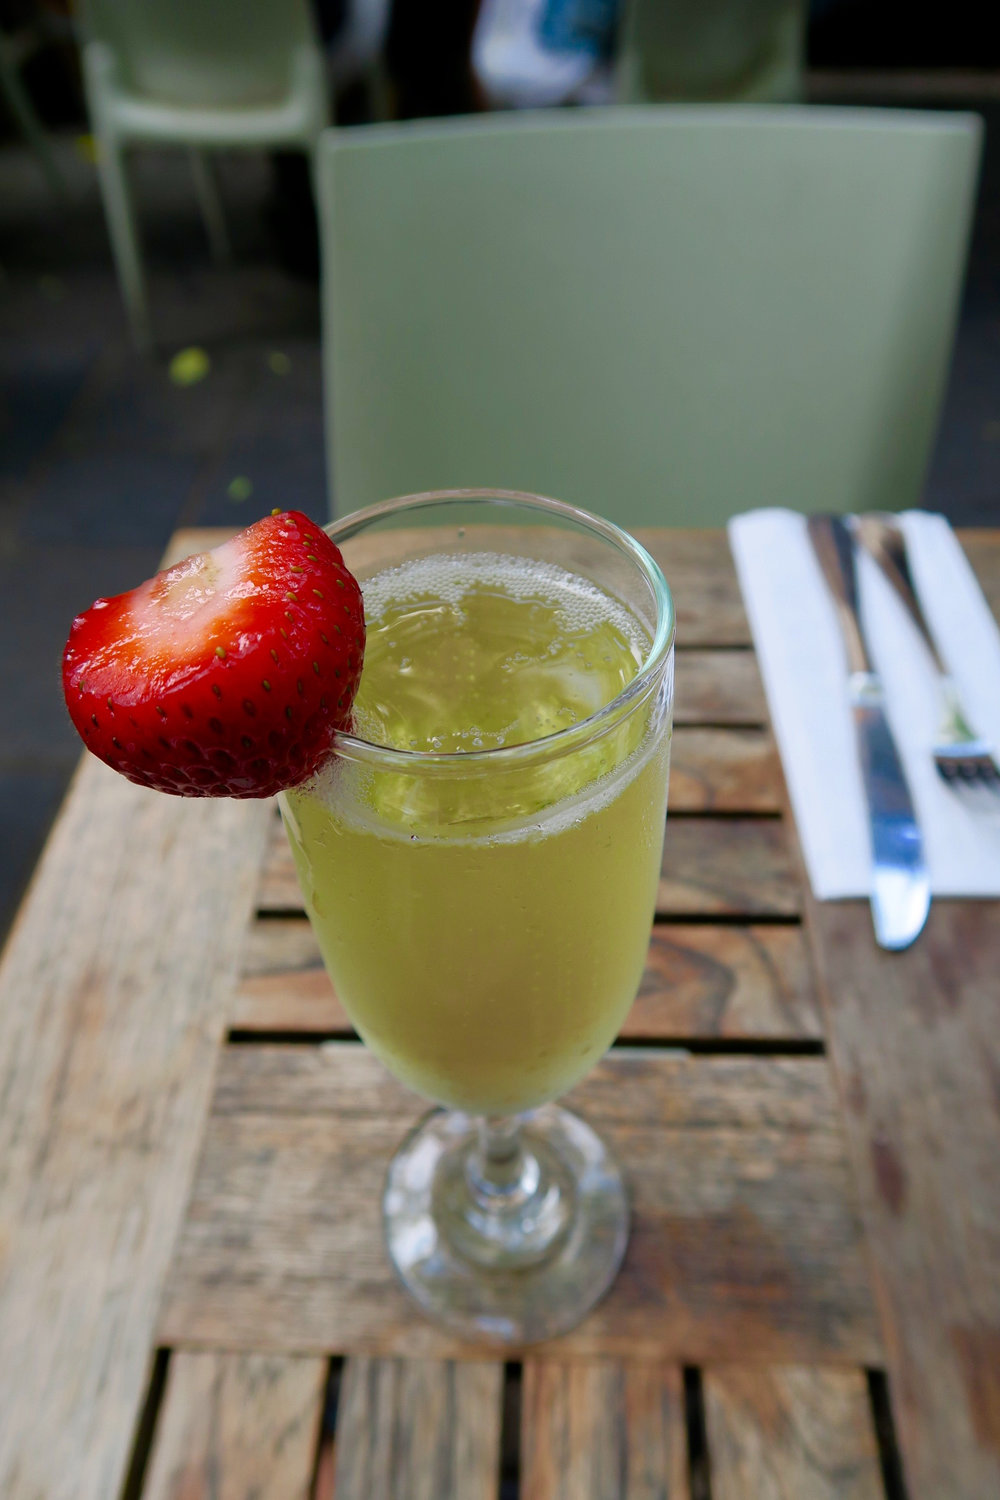 I'm still not sure why they put a strawberry as a garnish on the Crémant. It wasn't brunch.